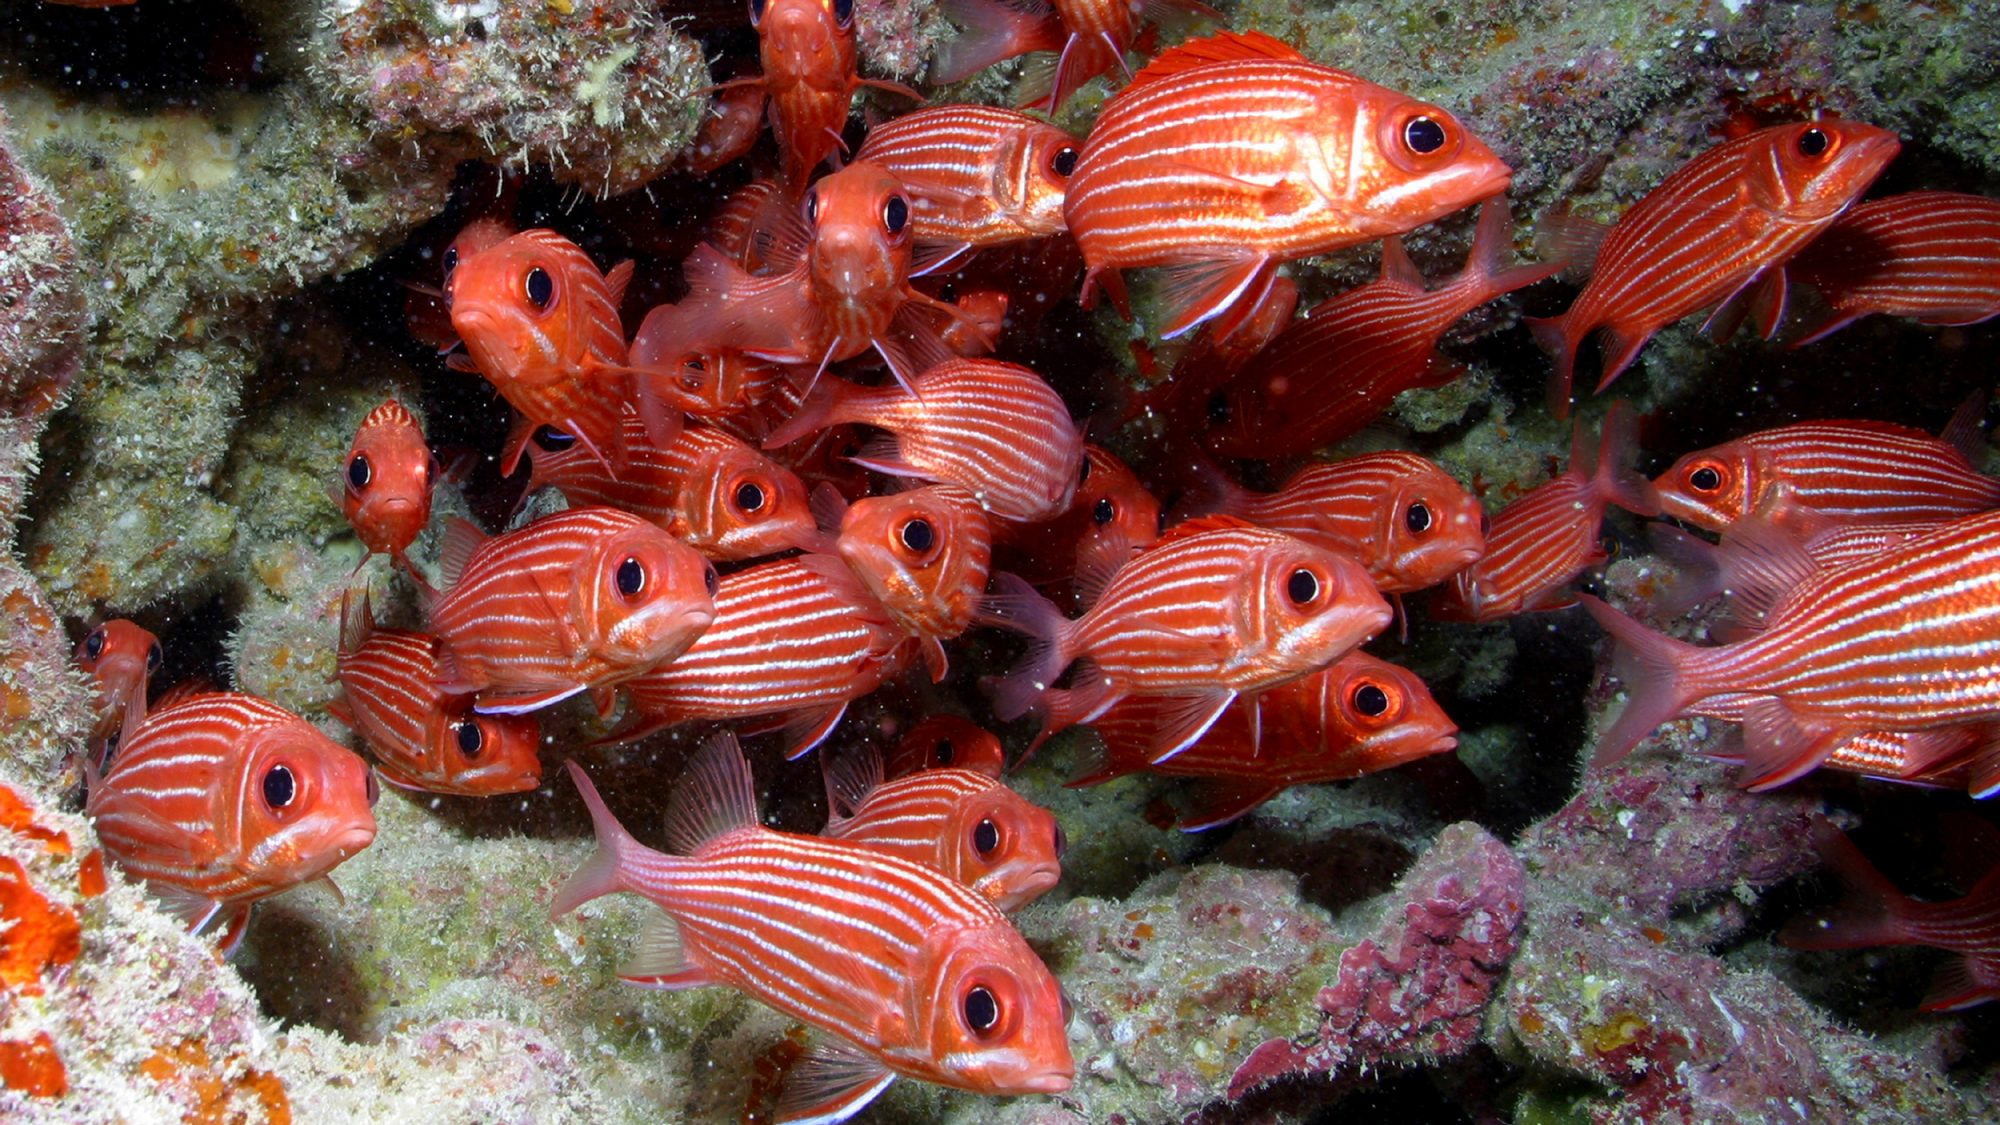 Papahānaumokuākea Marine National Monument